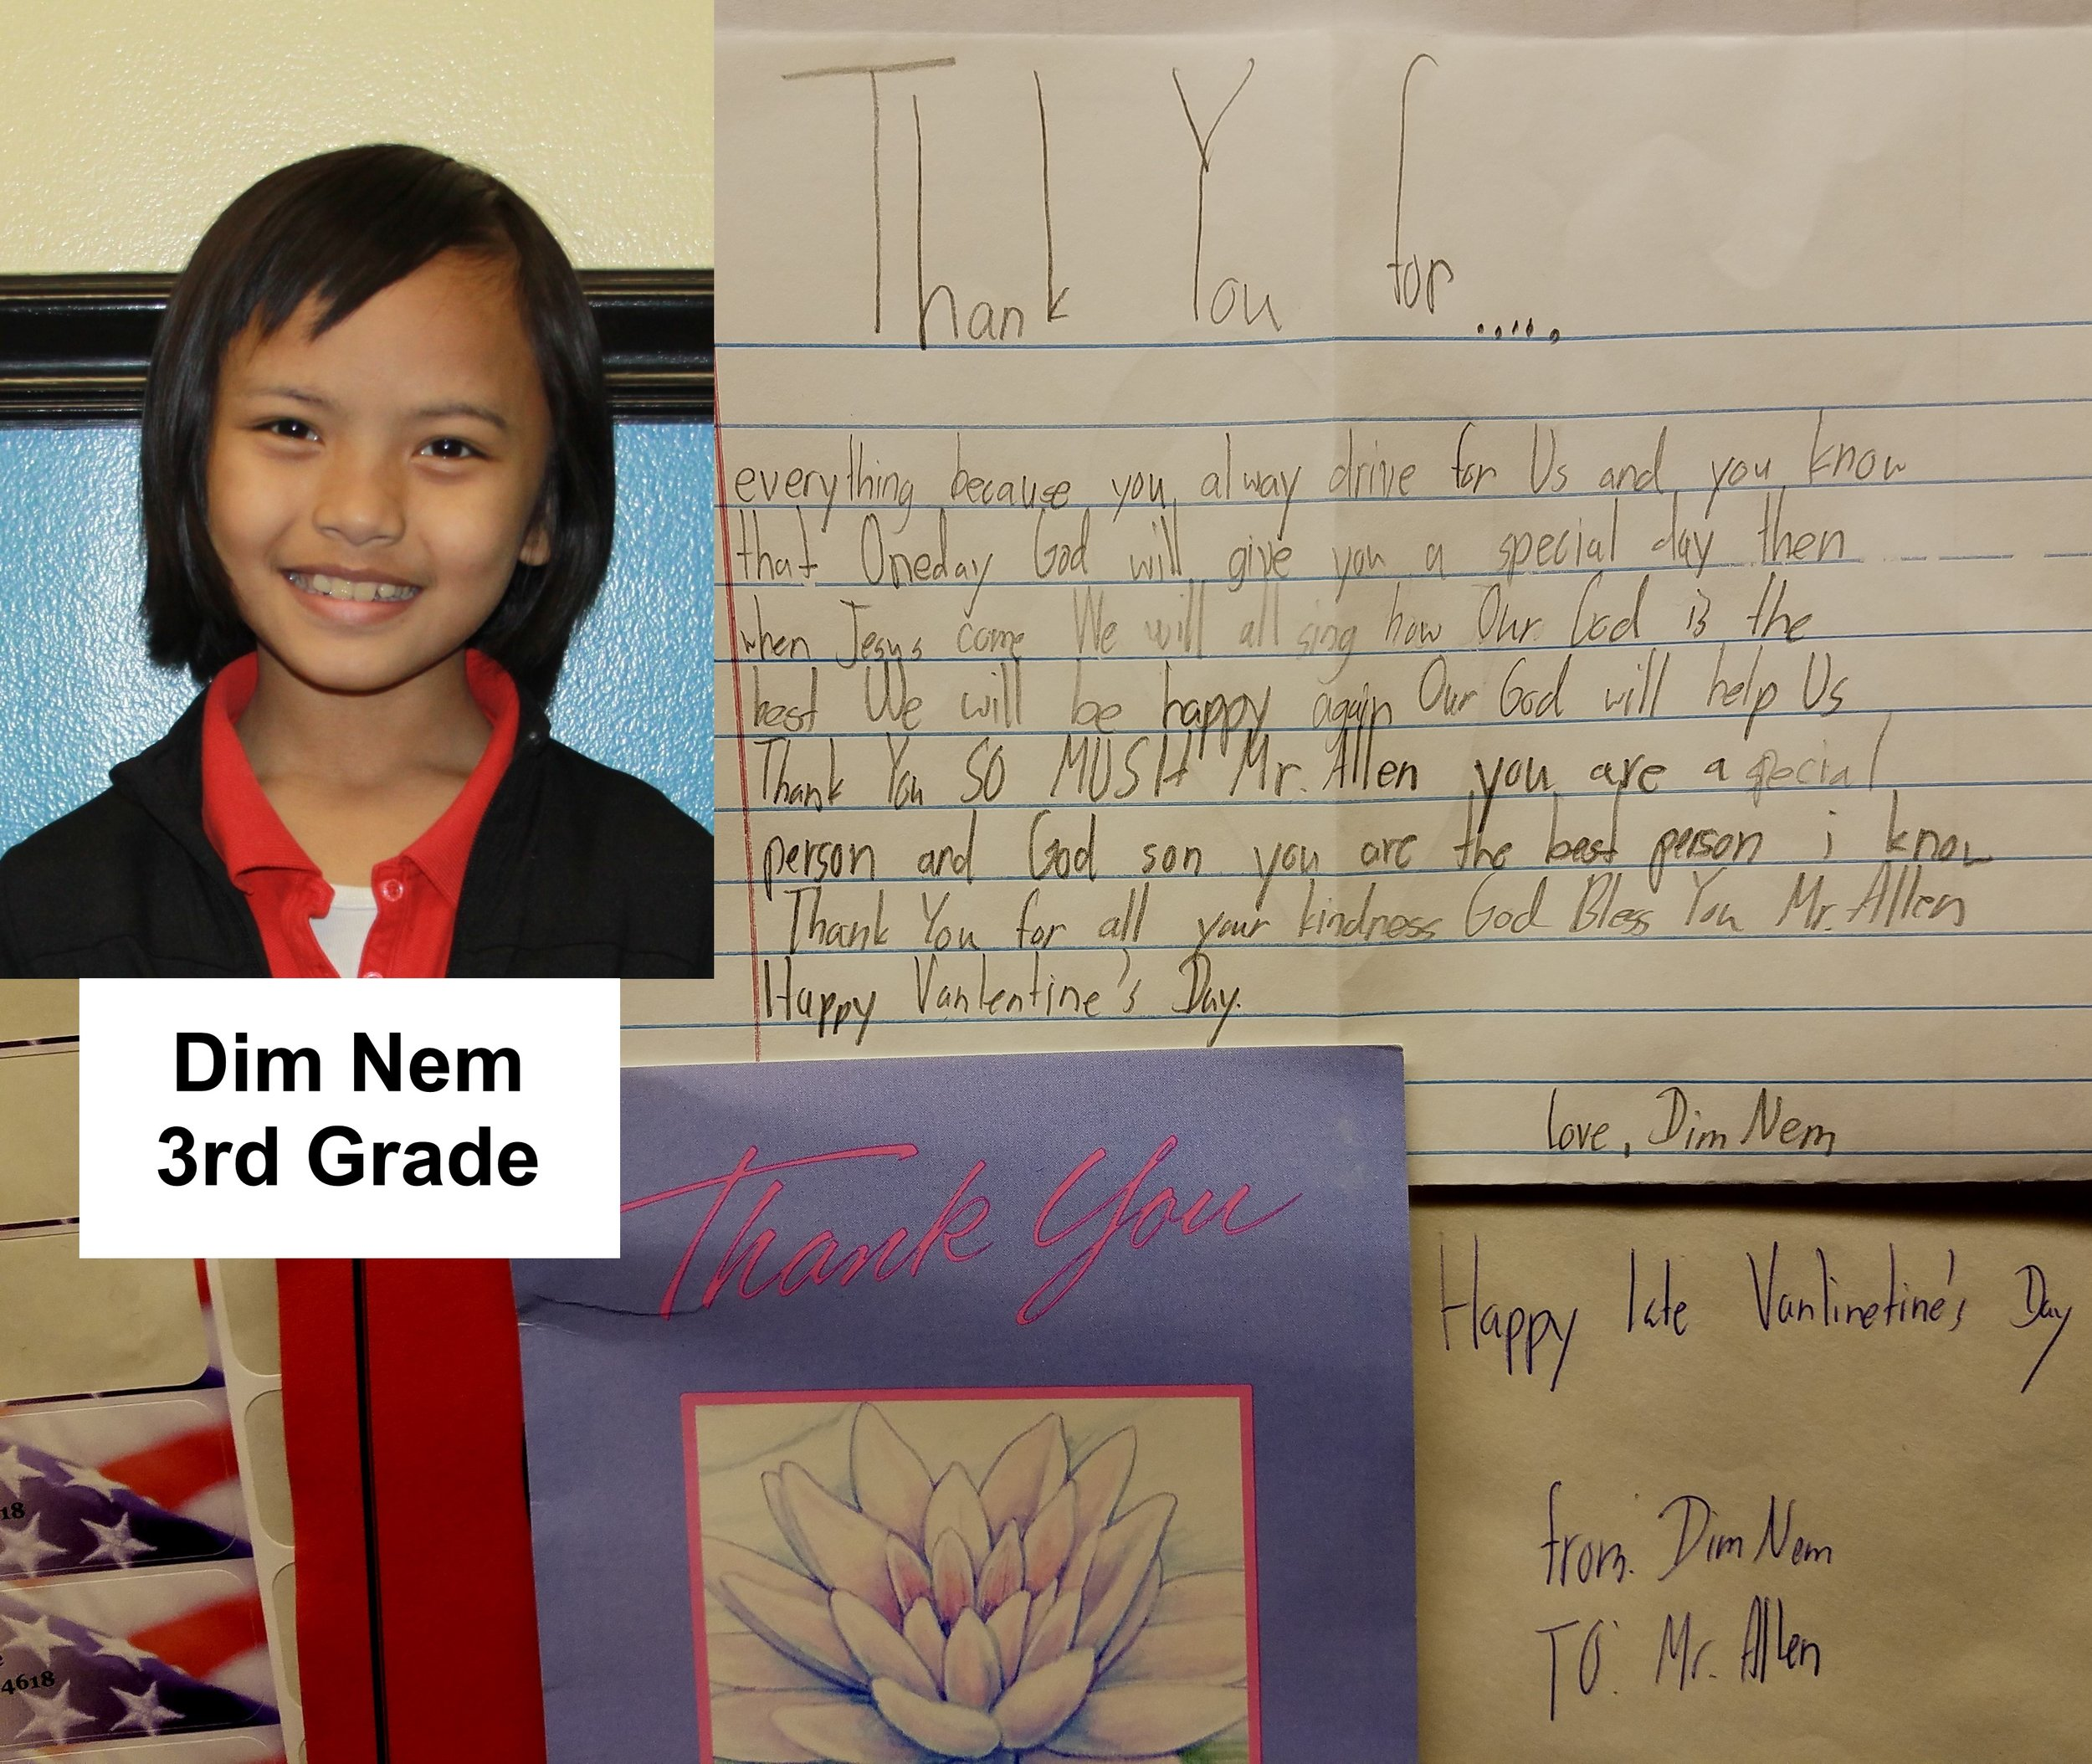 The joy one feels from gratitude shown is overwhelming. Above a Valentines Day card and note received from a young Zomi refugee child, a benefactor of F.R.E.E.'s ongoing christian education program.